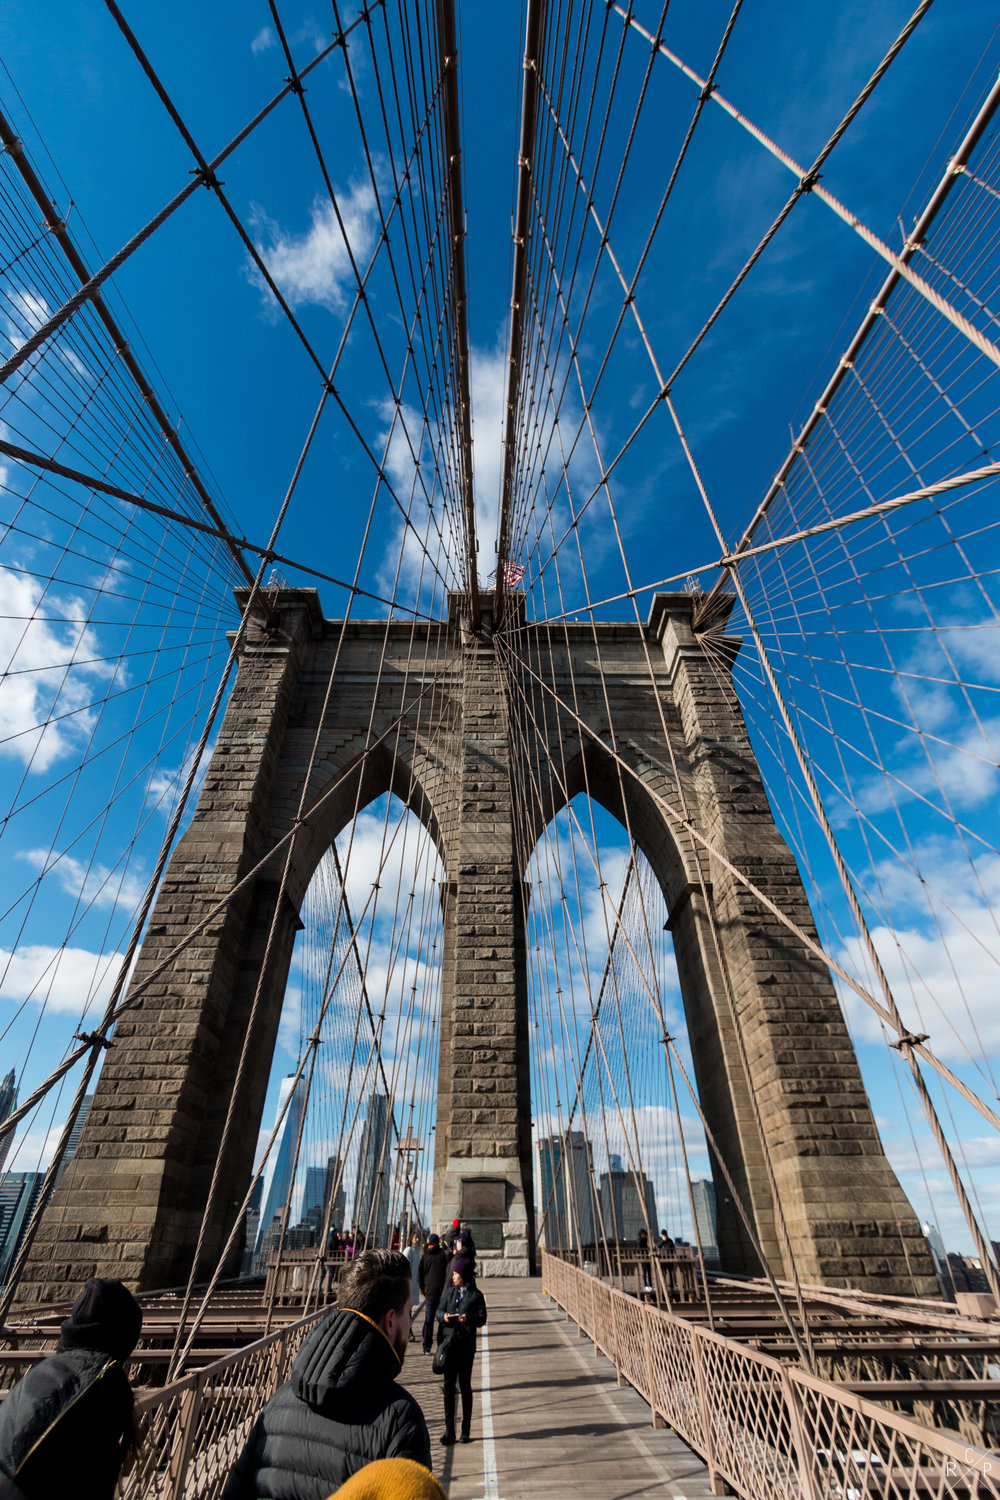 Brooklyn Bridge - New York, USA 16/02/2017